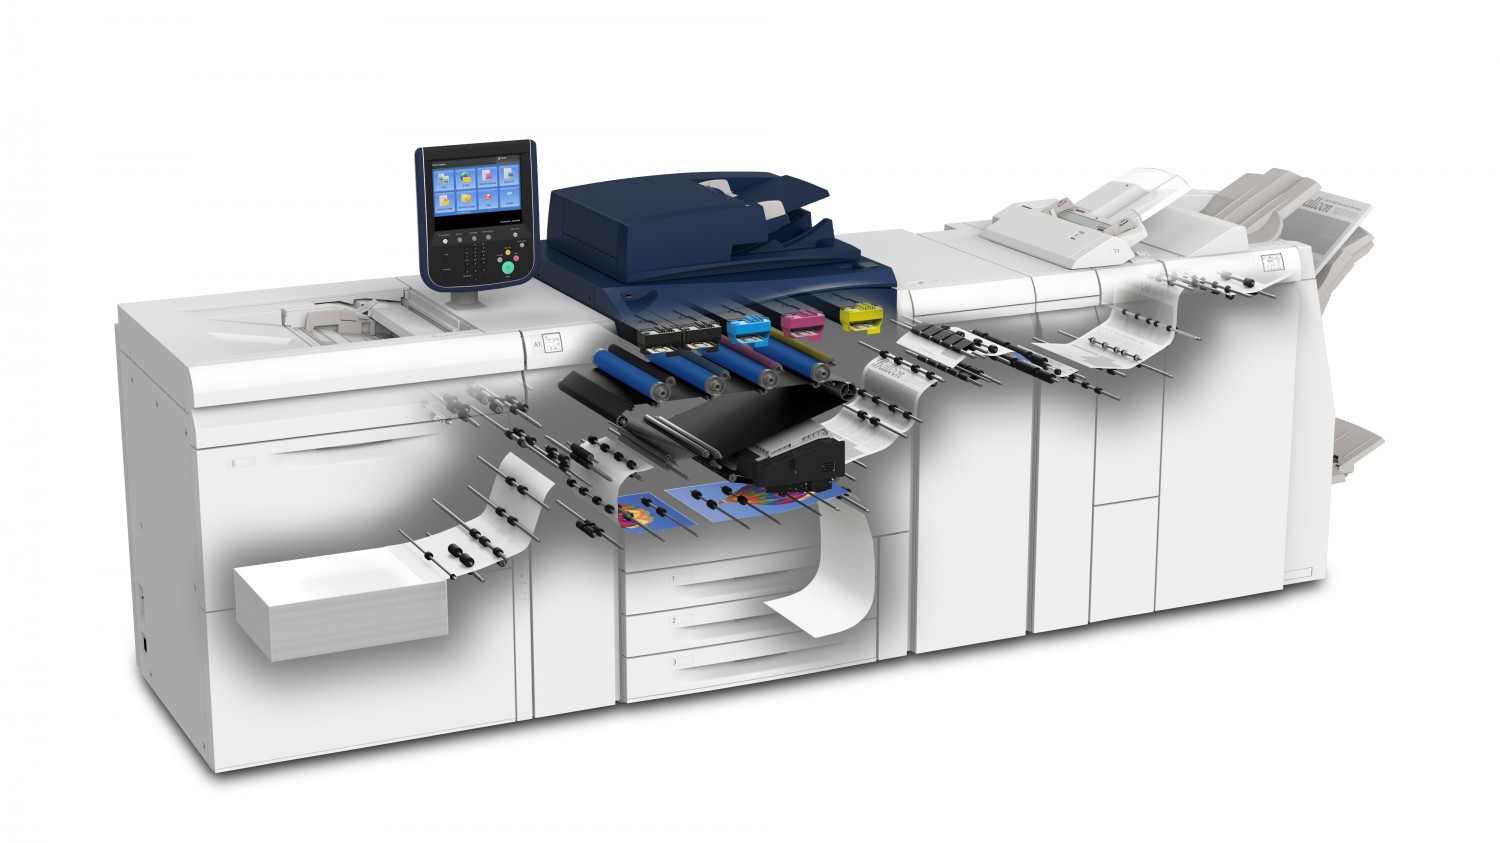 High quality of digital printing colorama coloured equipment which helps us produce very quickly digital printing products on various types of paper and cardboard in an automatic flow reheart Gallery